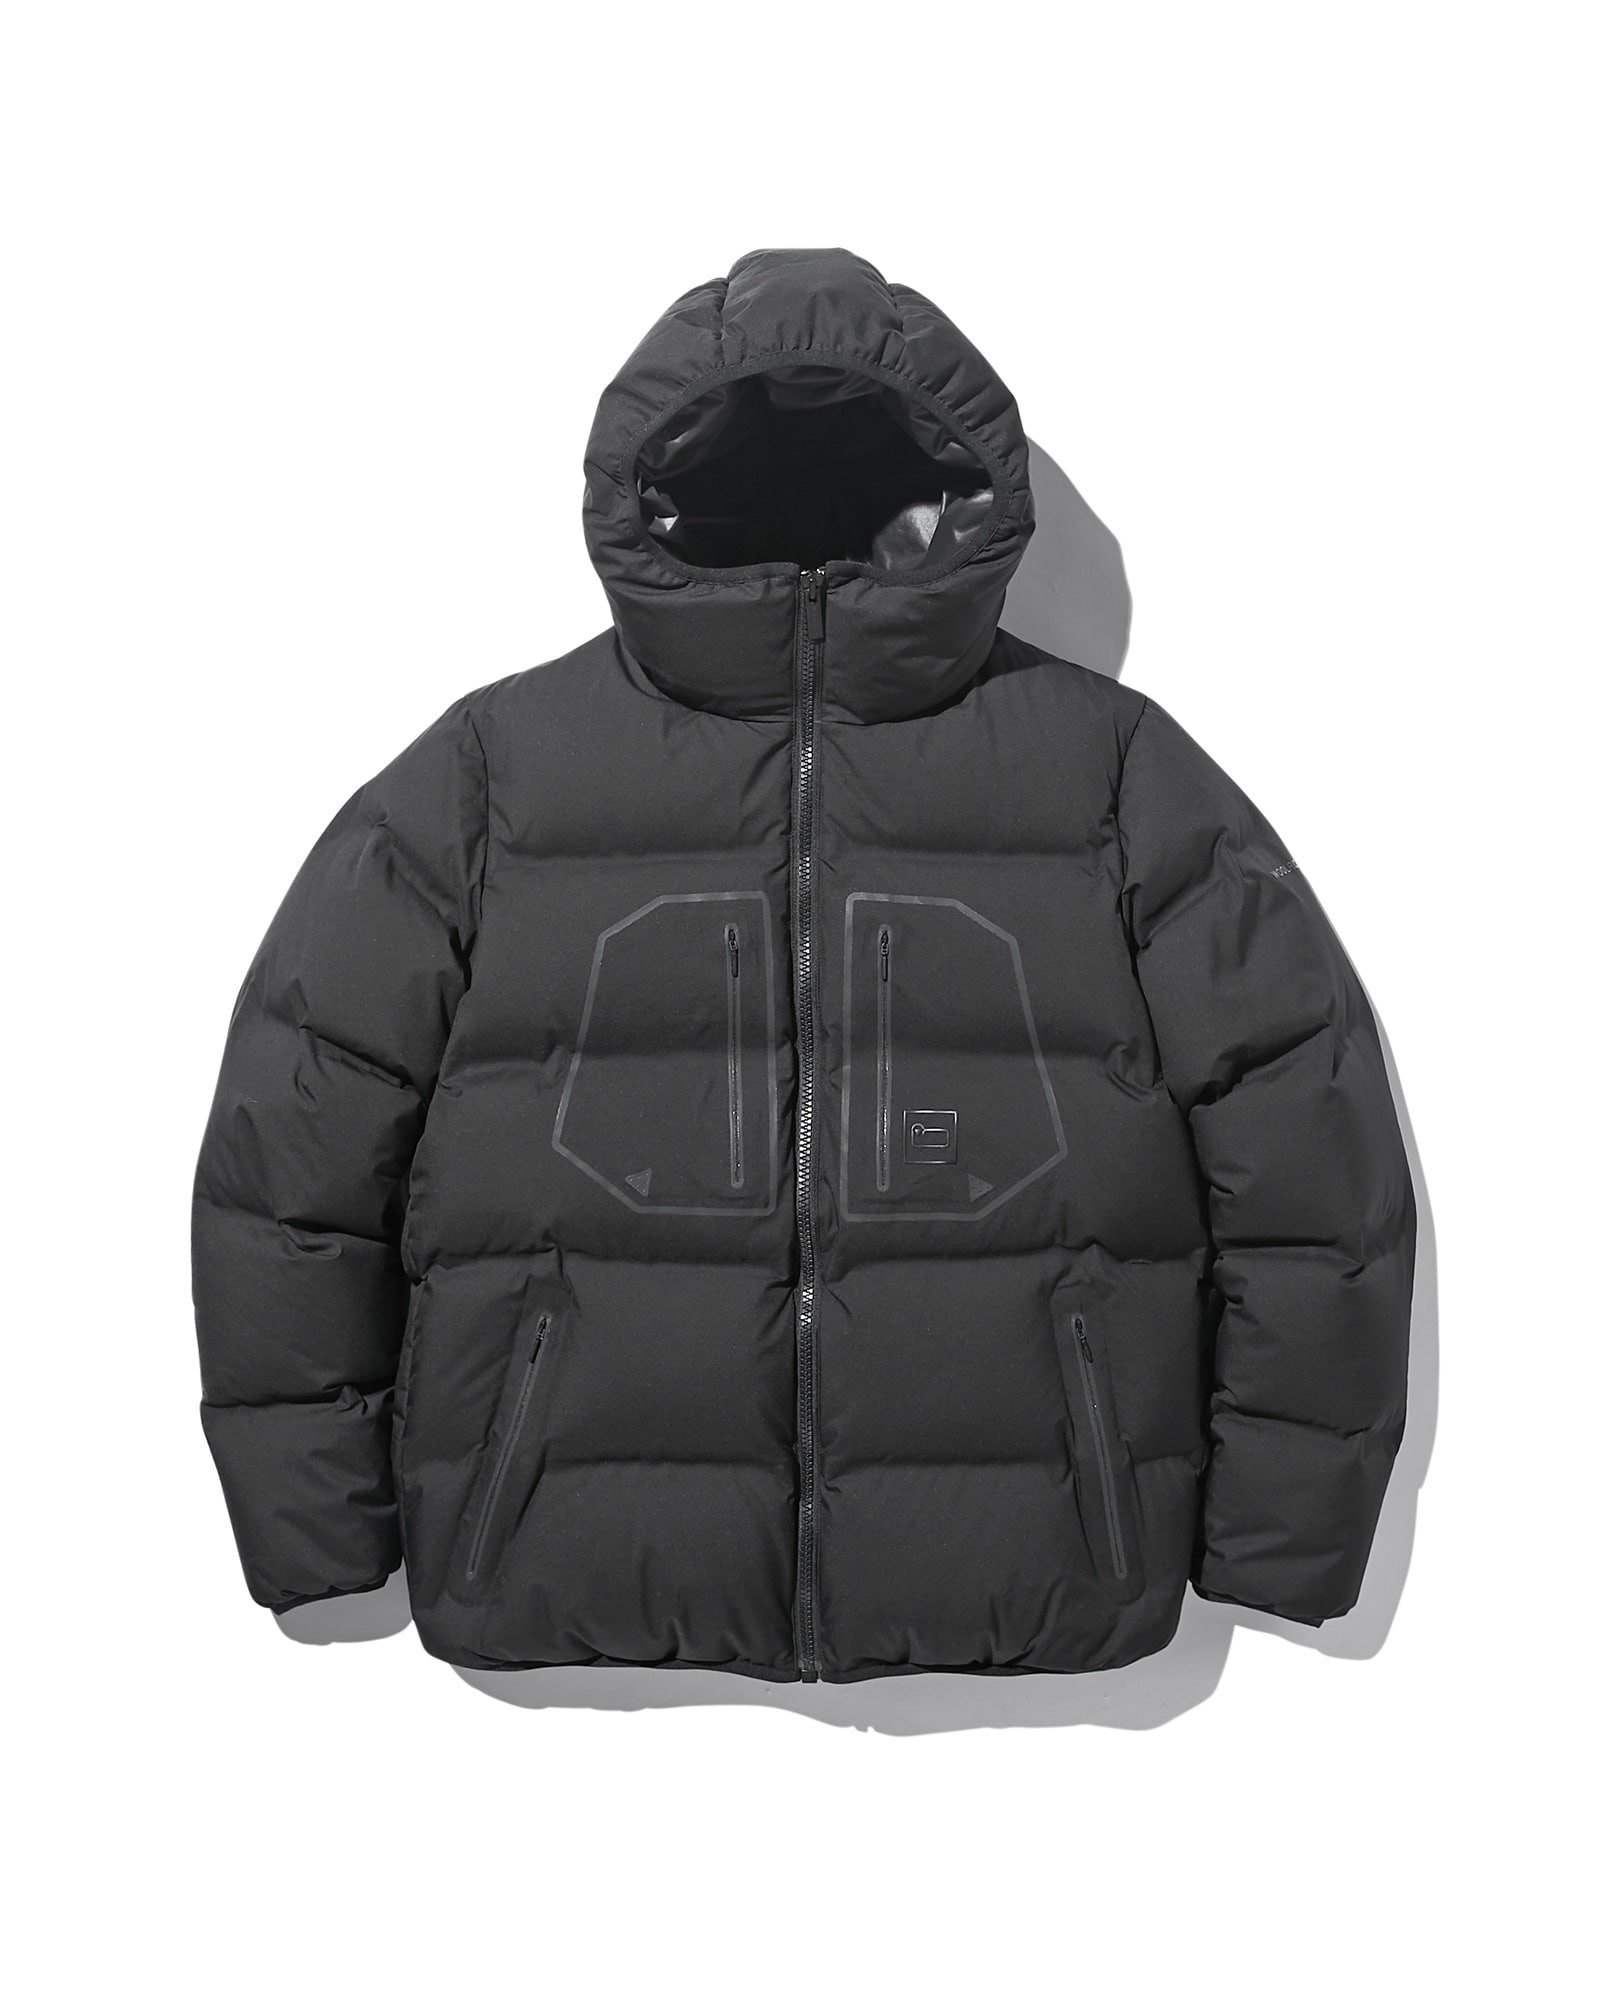 WINTERTIDE DOWN PARKA